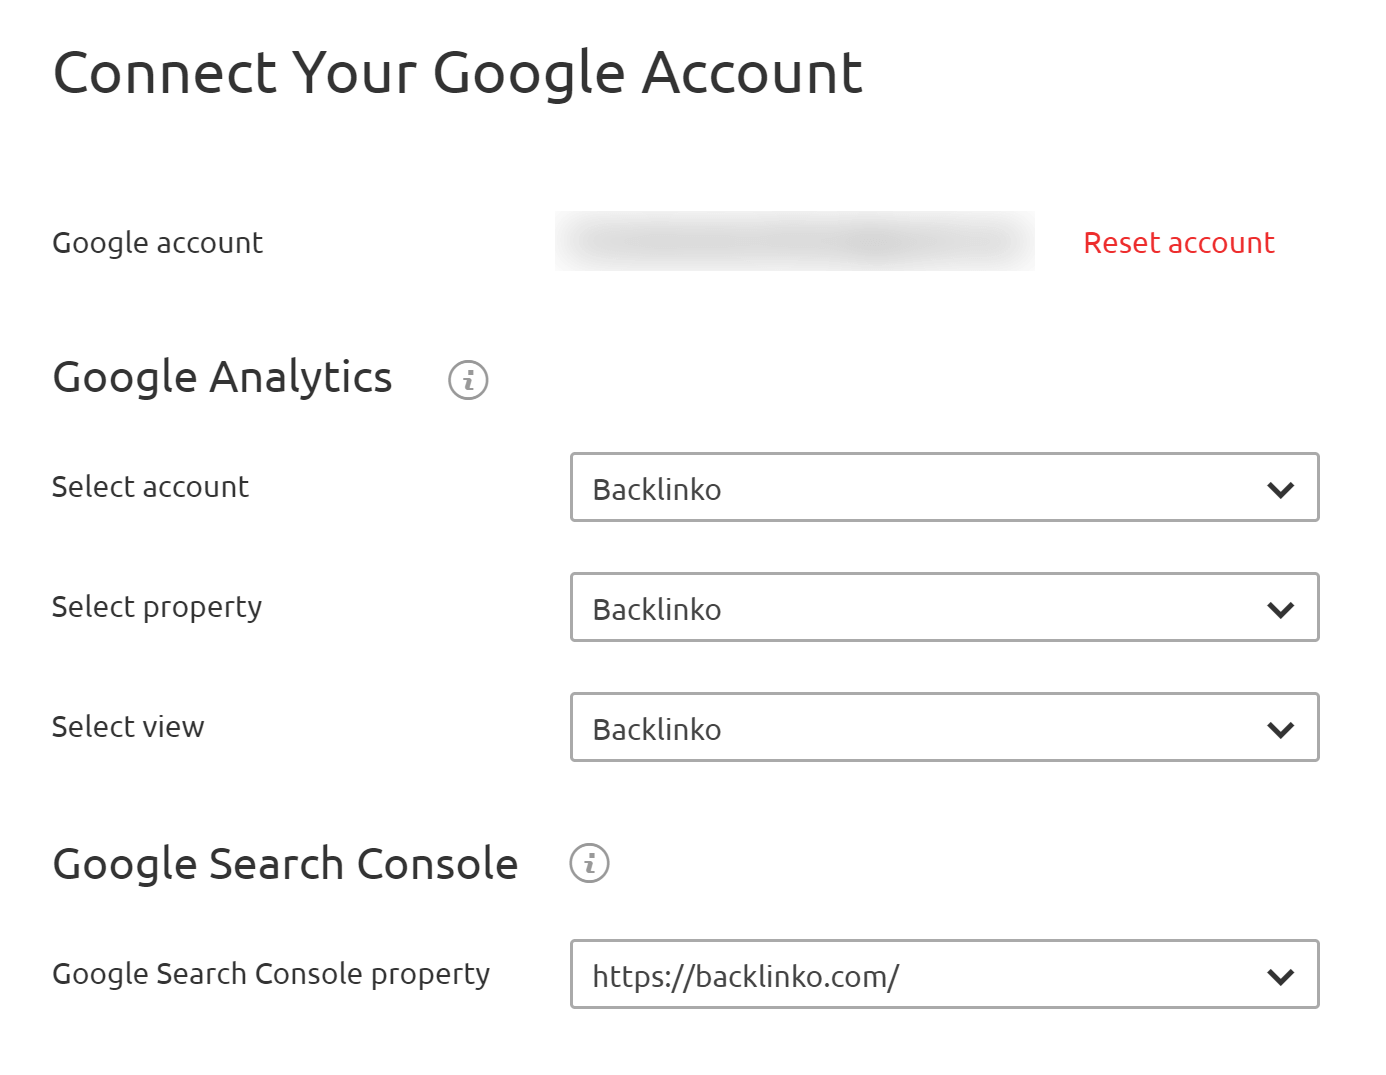 Organic Traffic insights – Connect Google Analytics and Google Search Console accounts